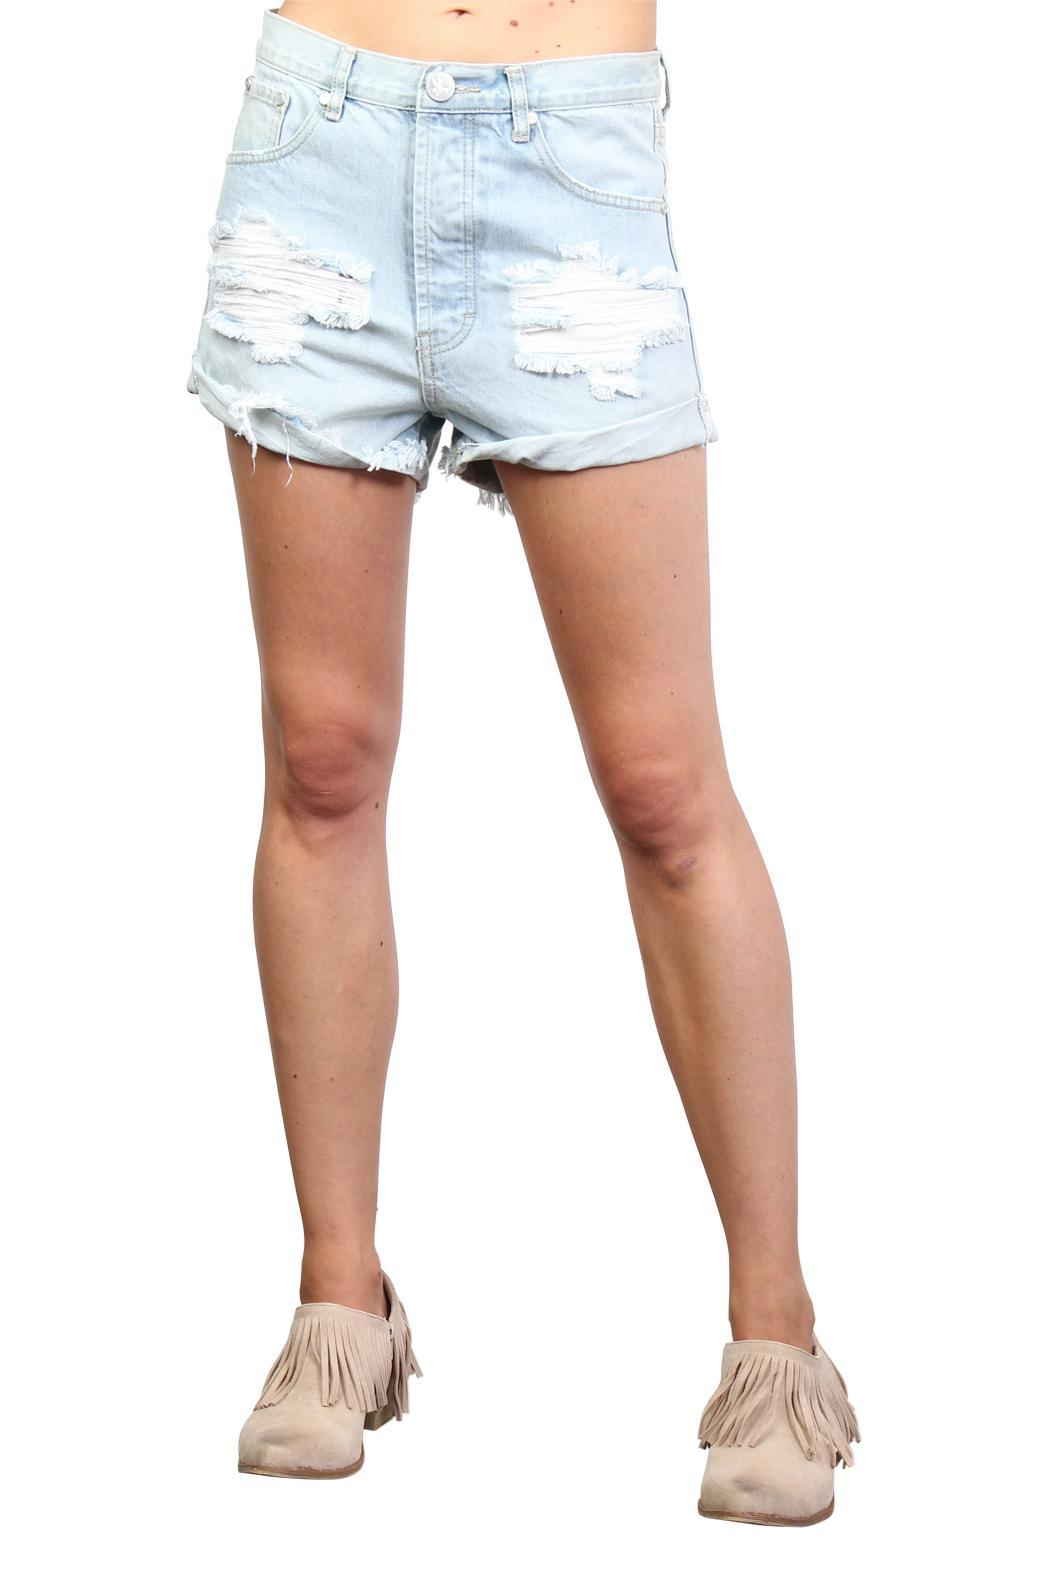 One Teaspoon Wilde Outlaw Denim Shorts - Front Full Image